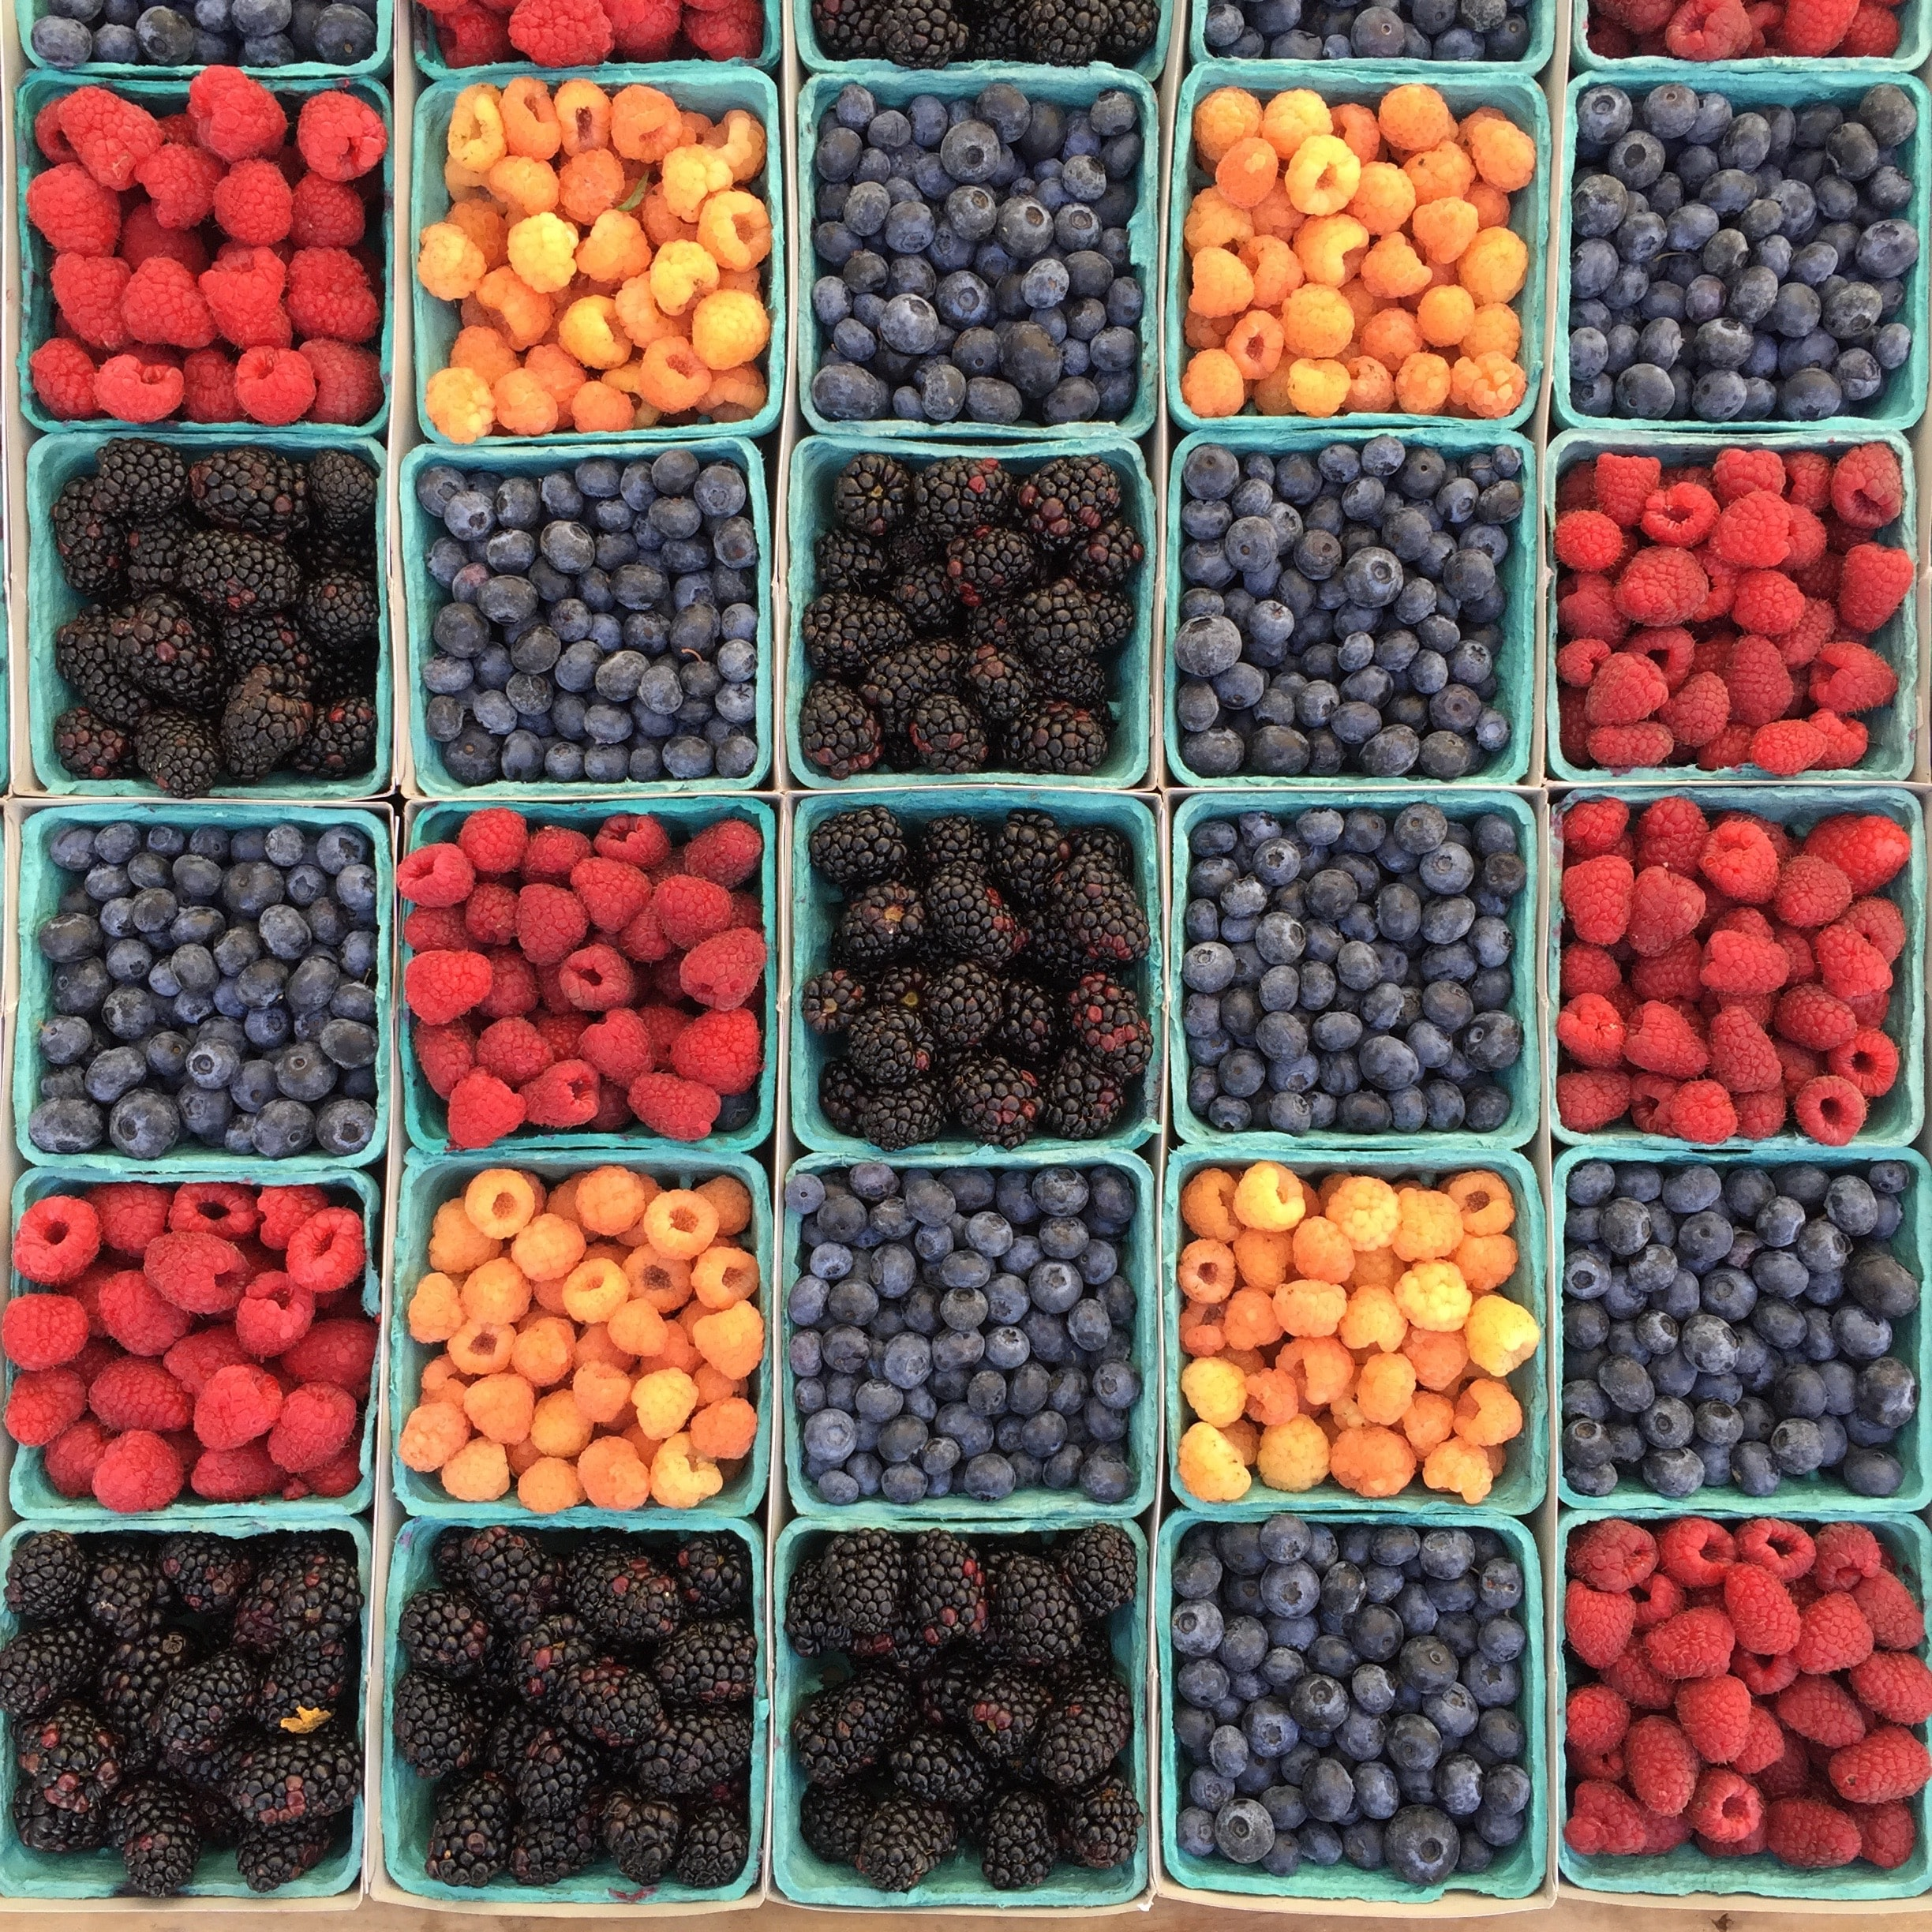 Value of Variety and Choice Overload in Customer Psychology – mixed berries